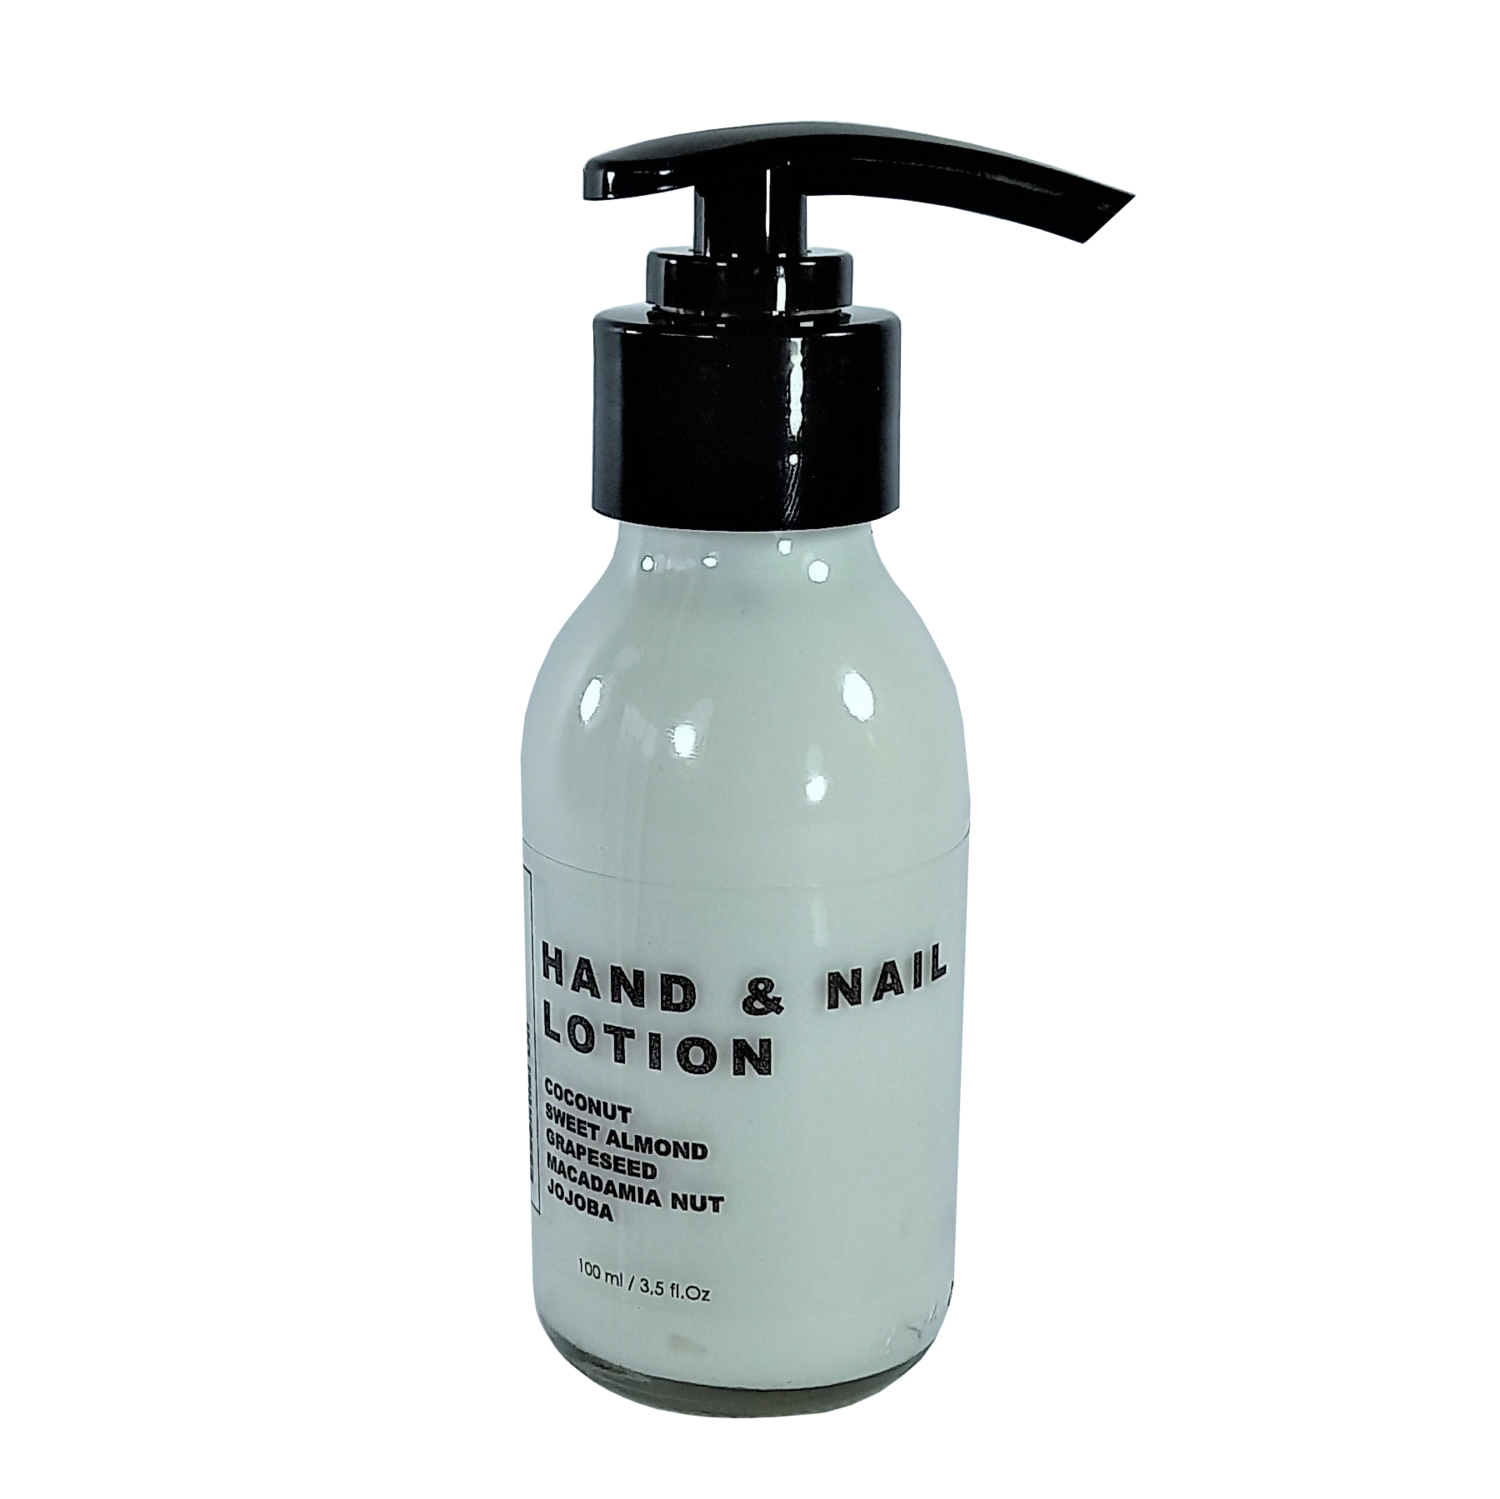 HAND & NAIL LOTION - NARCISSUS FLOWER 100ML